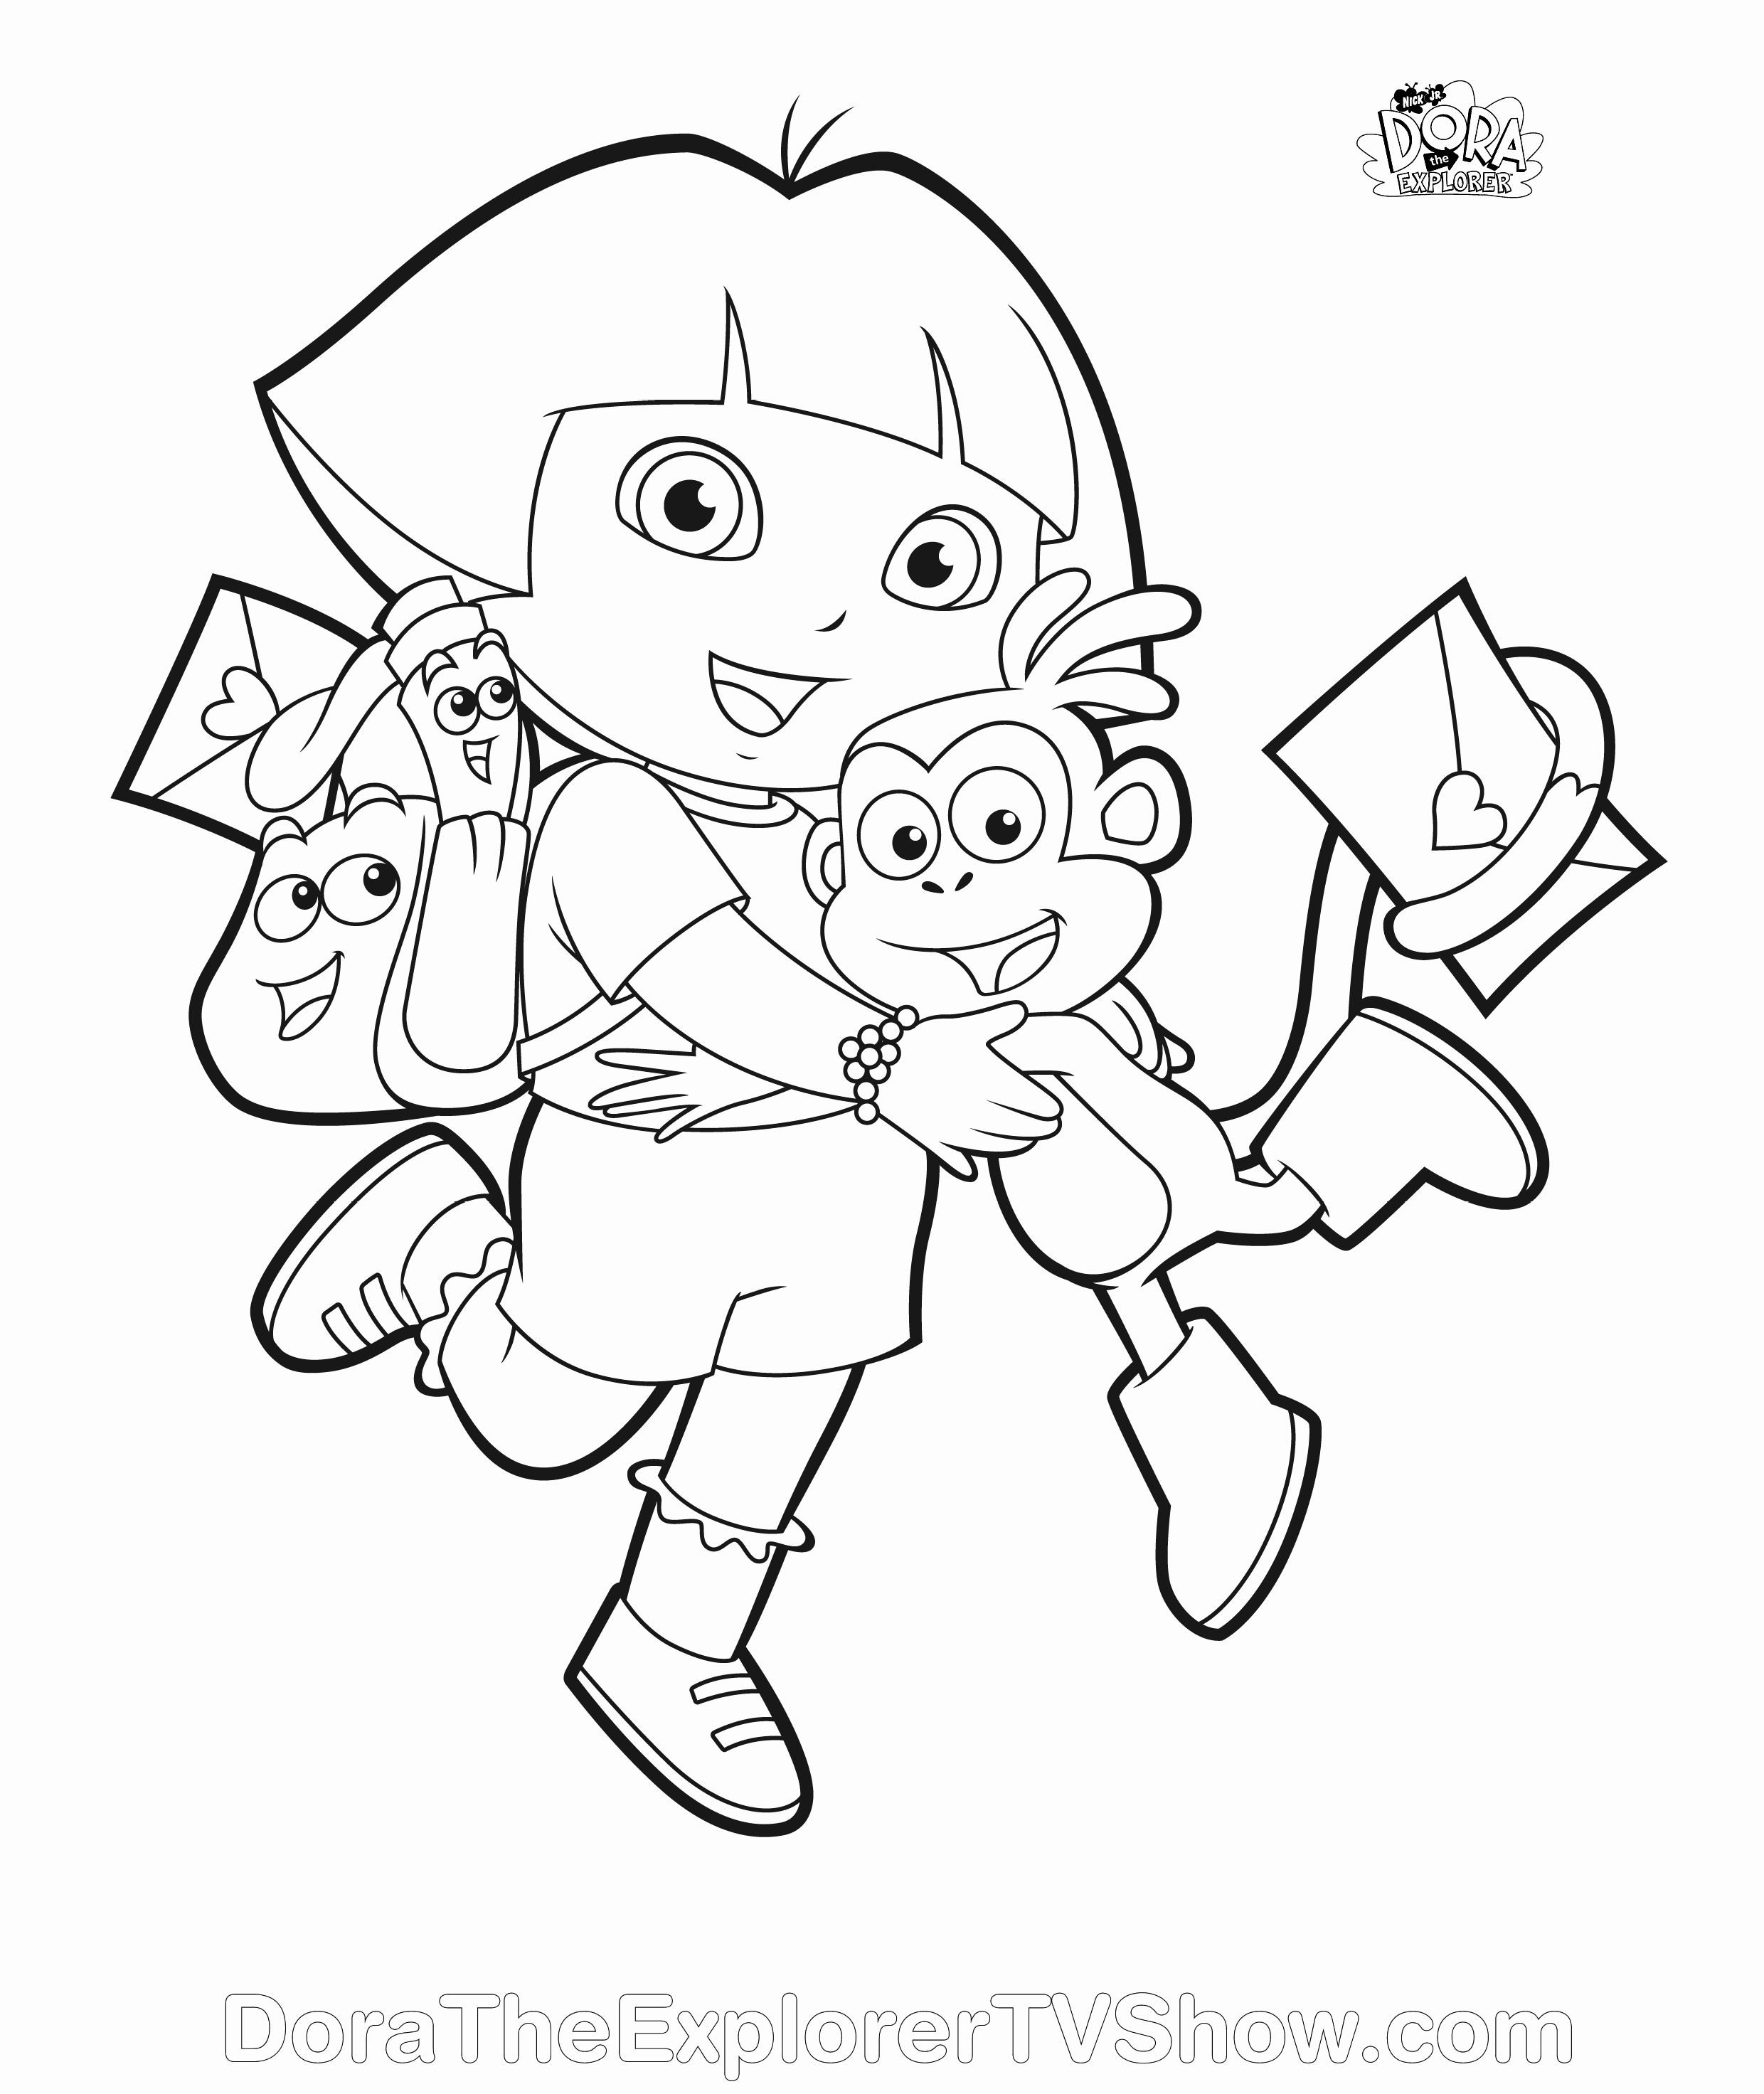 Disney Drawing Book Dora In With Images